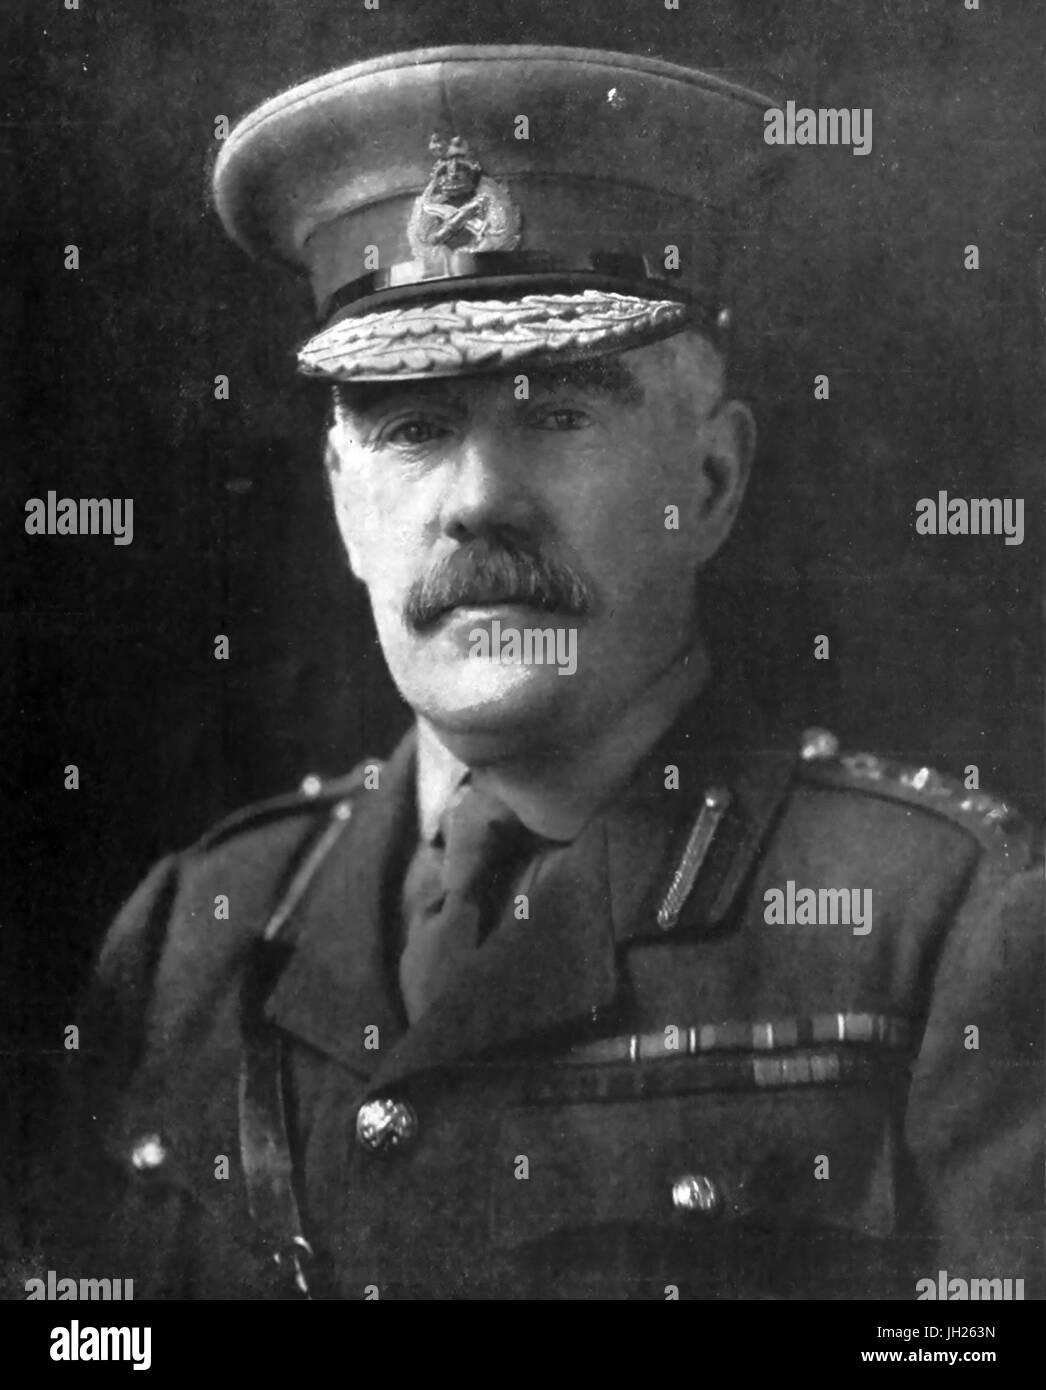 WILLIAM ROBERTSON (1860-1933) British Army officer as Chief of the Imperial General Staff - Stock Image